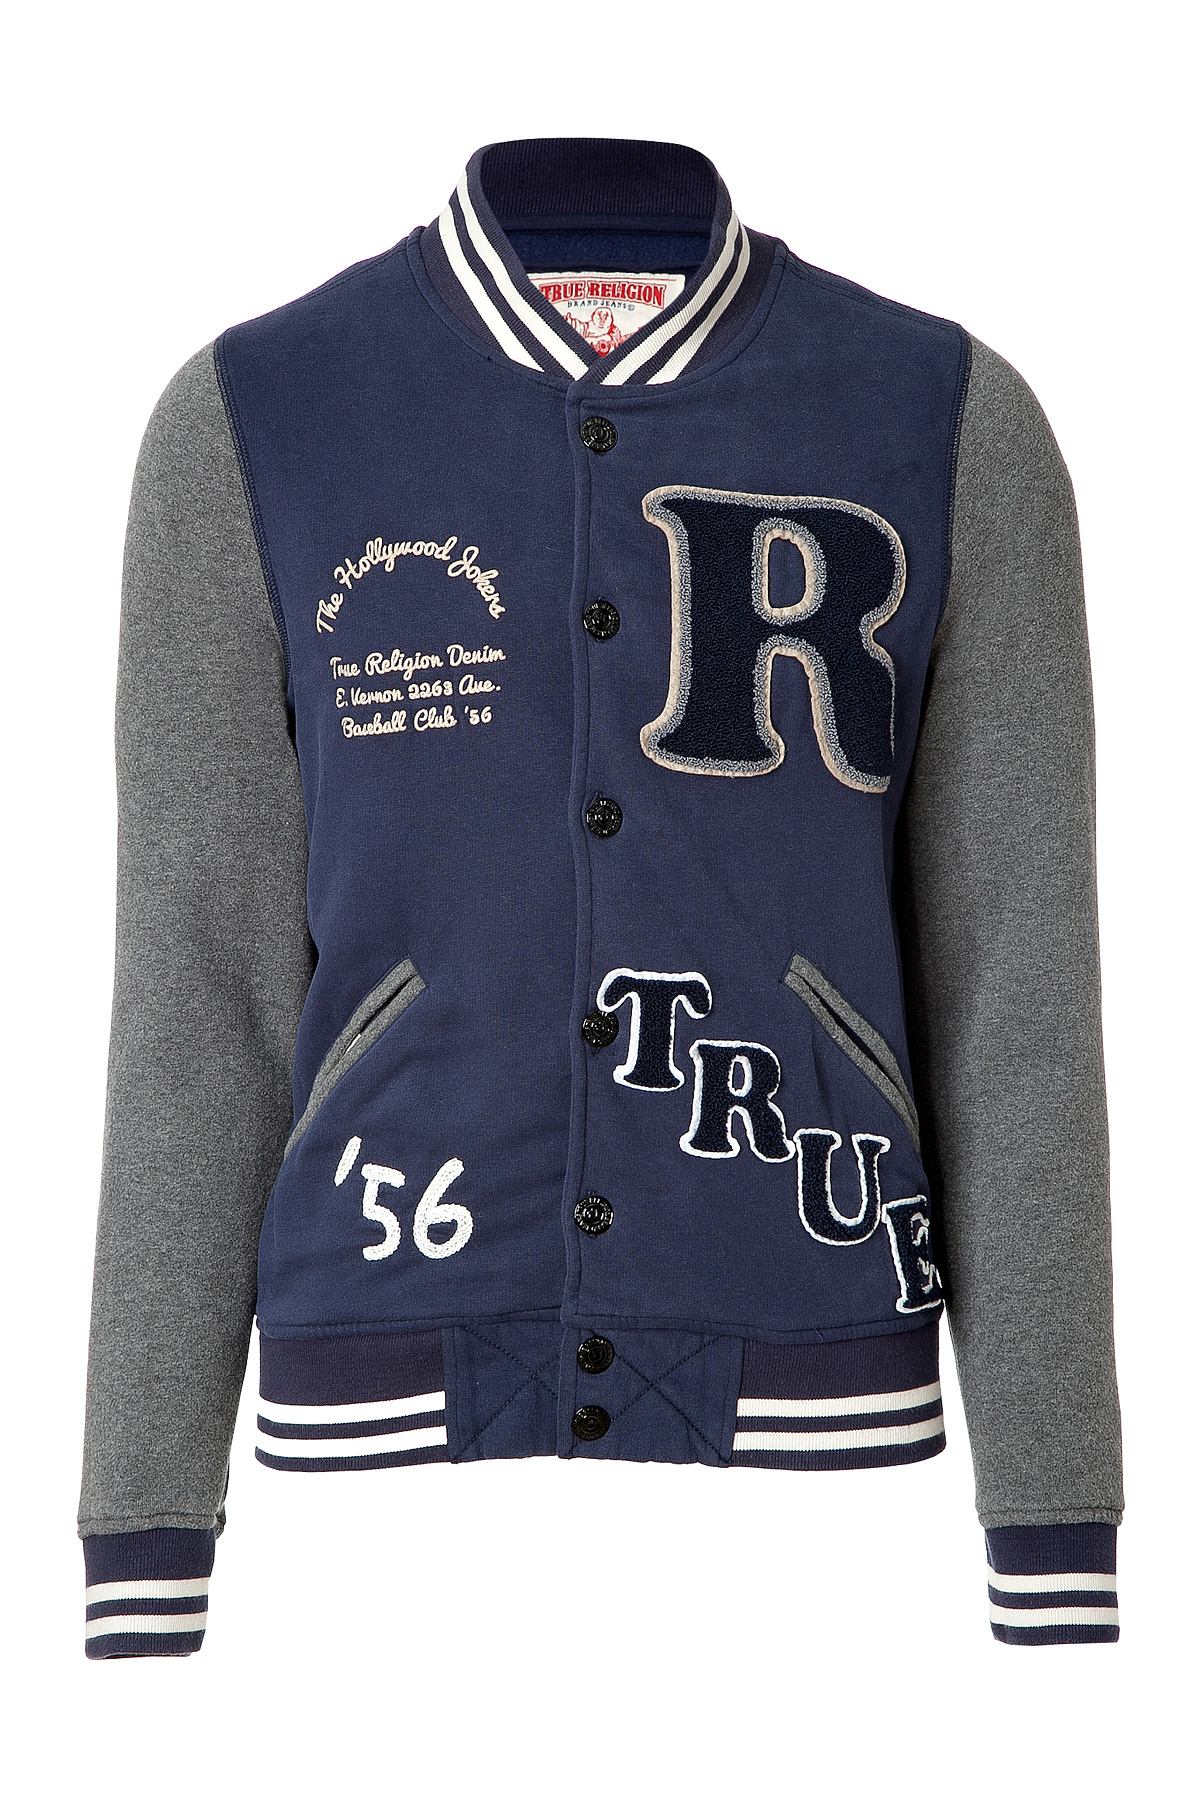 true religion cotton blend baseball jacket in rugby blue. Black Bedroom Furniture Sets. Home Design Ideas